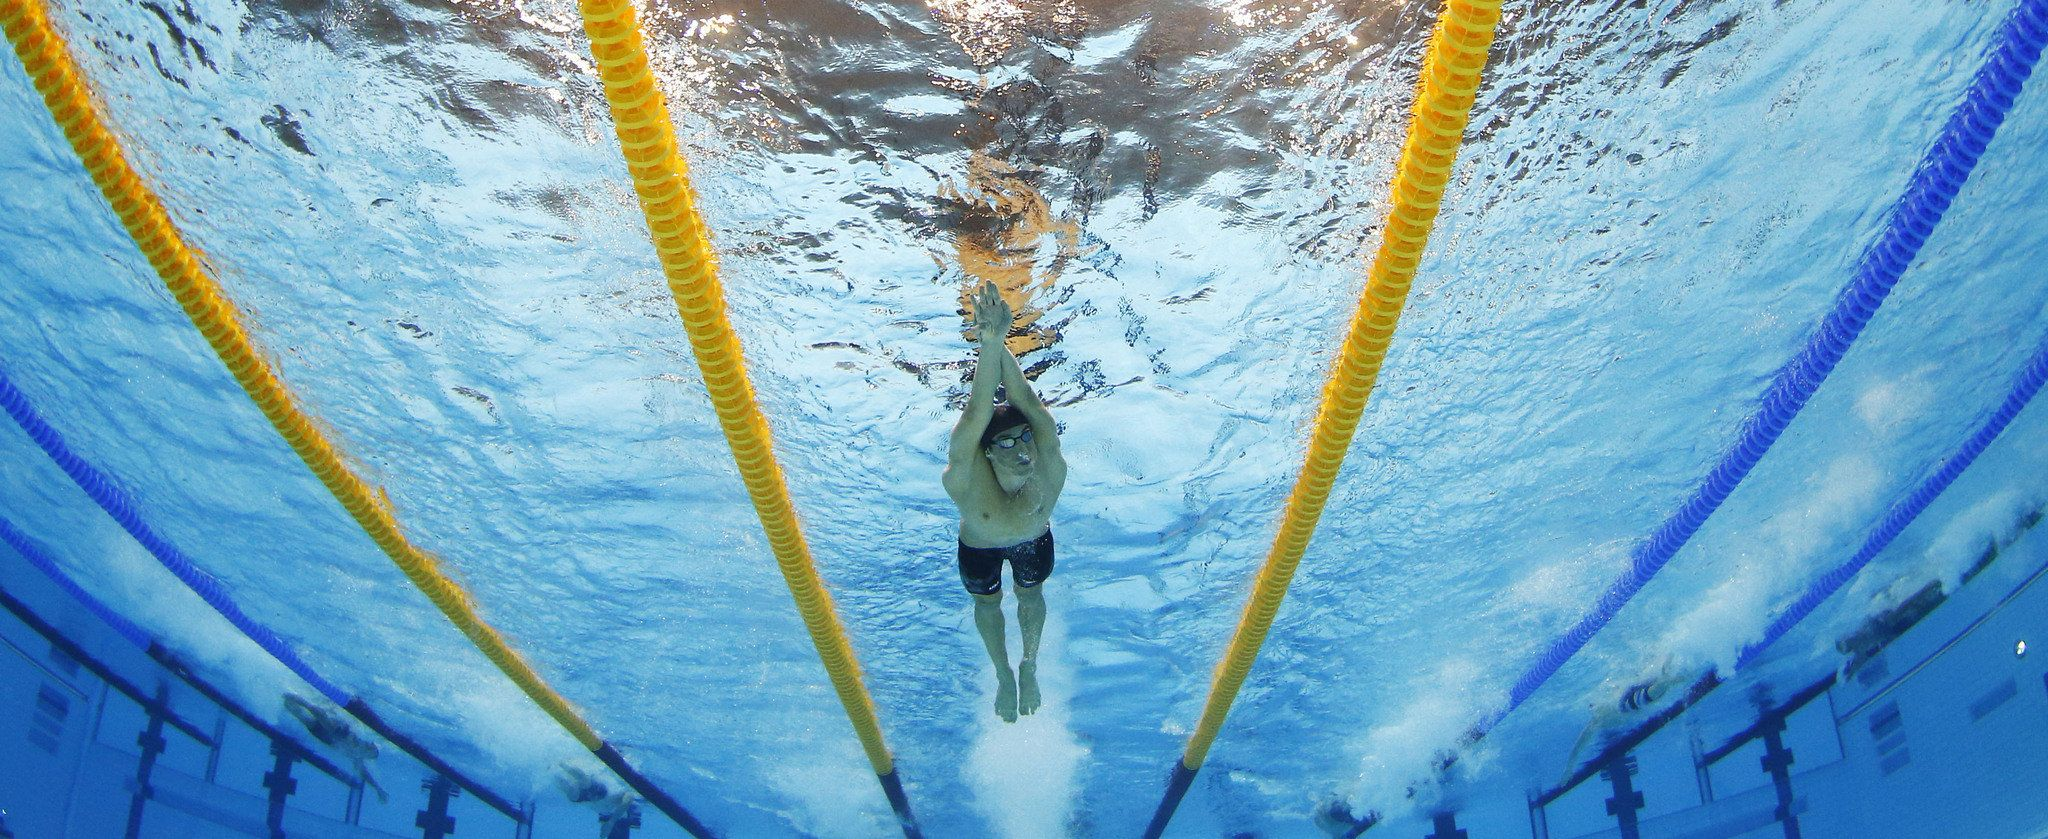 olympics - Olympic Swimming Underwater